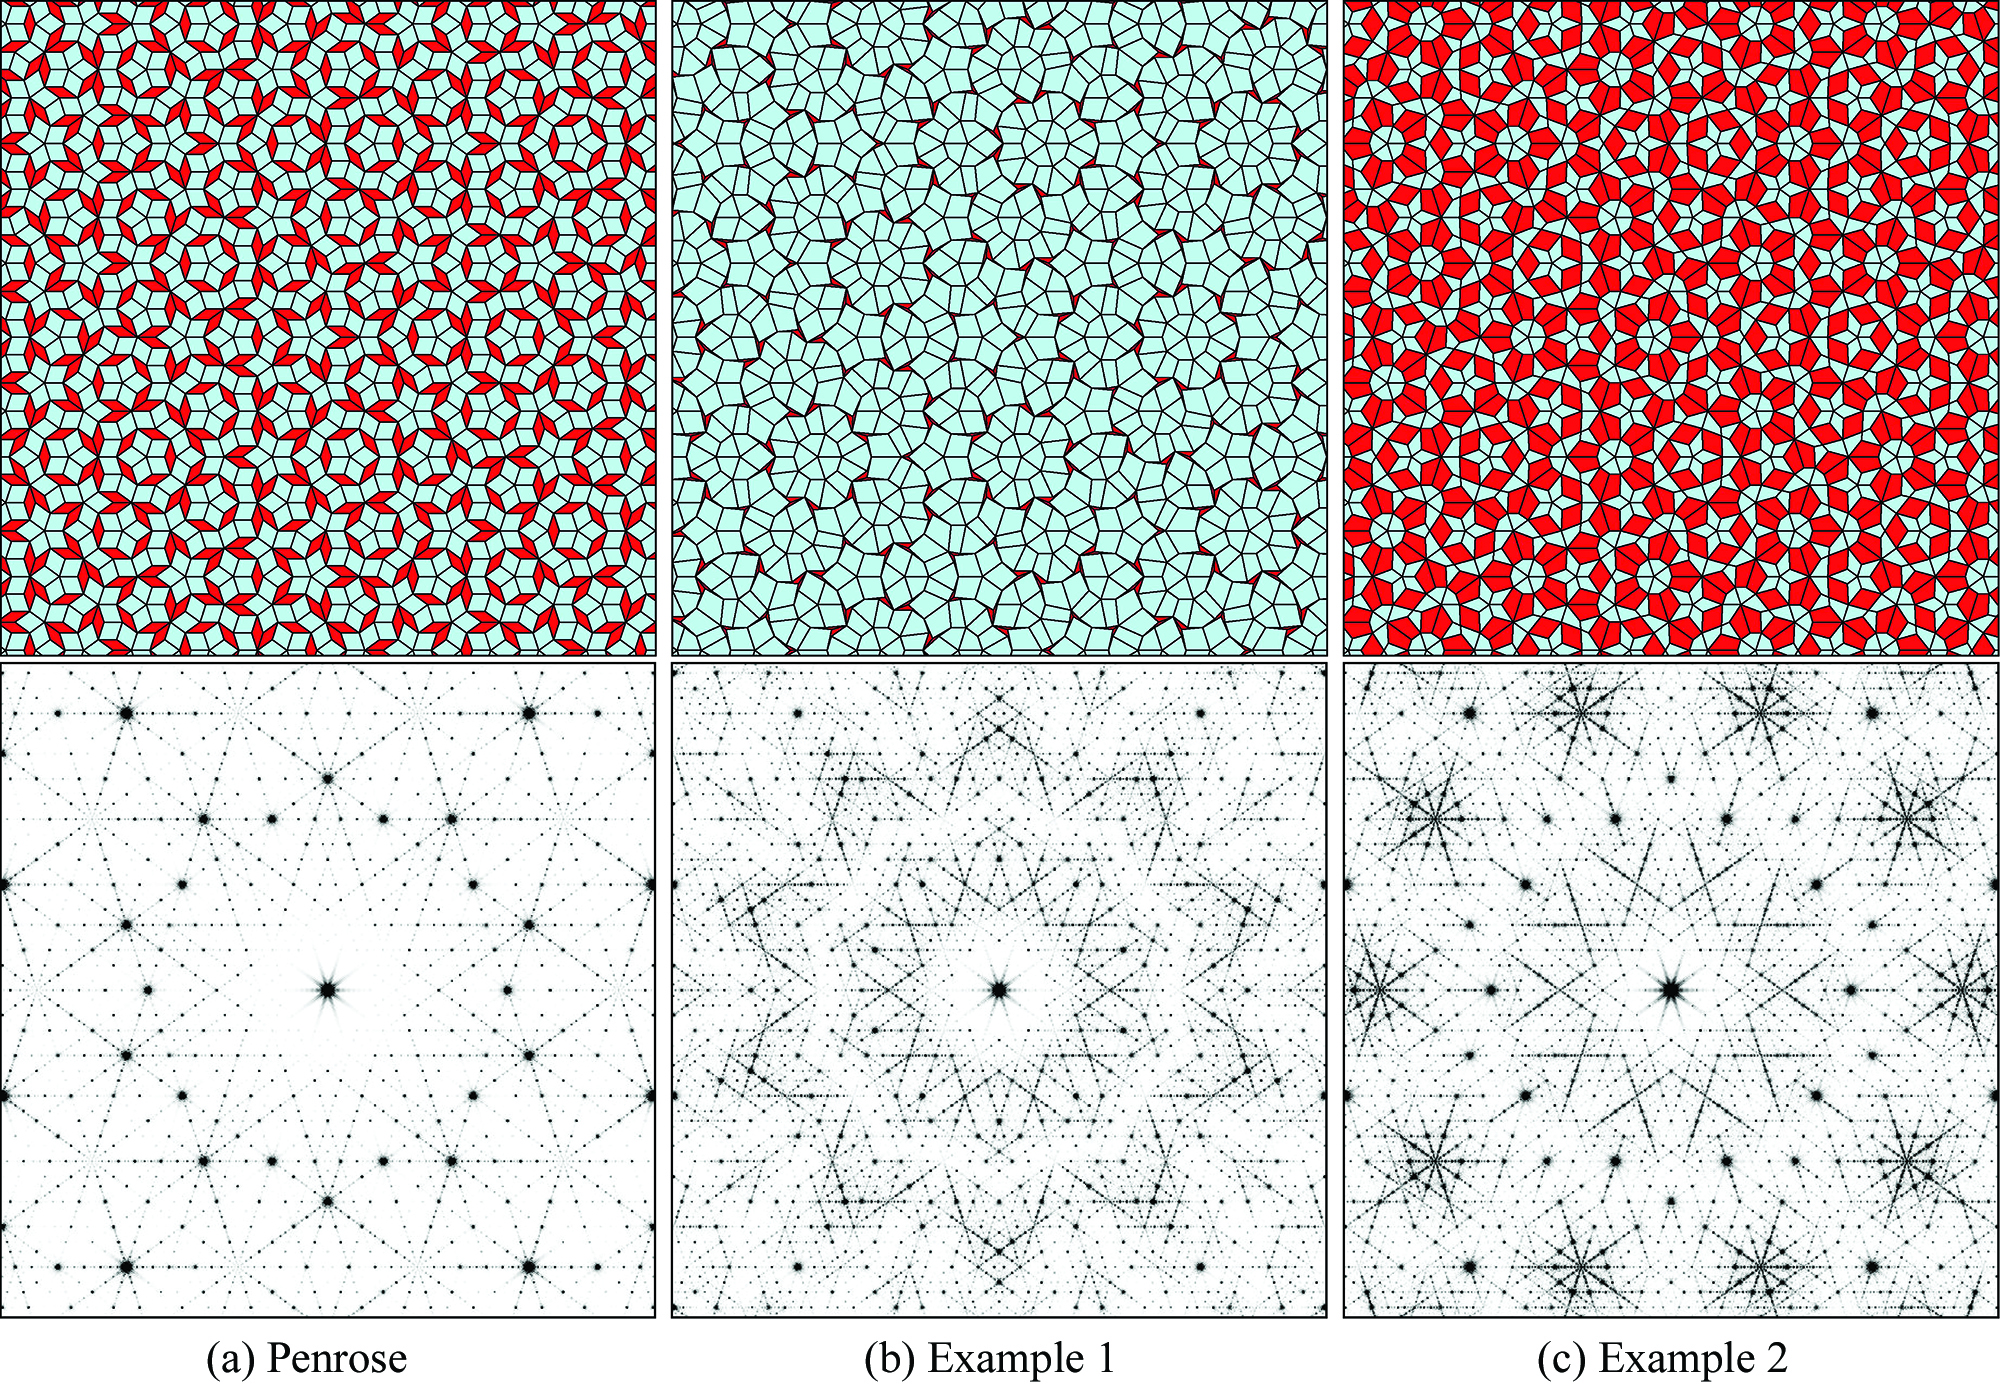 [Fig. 3 quasicrystals]